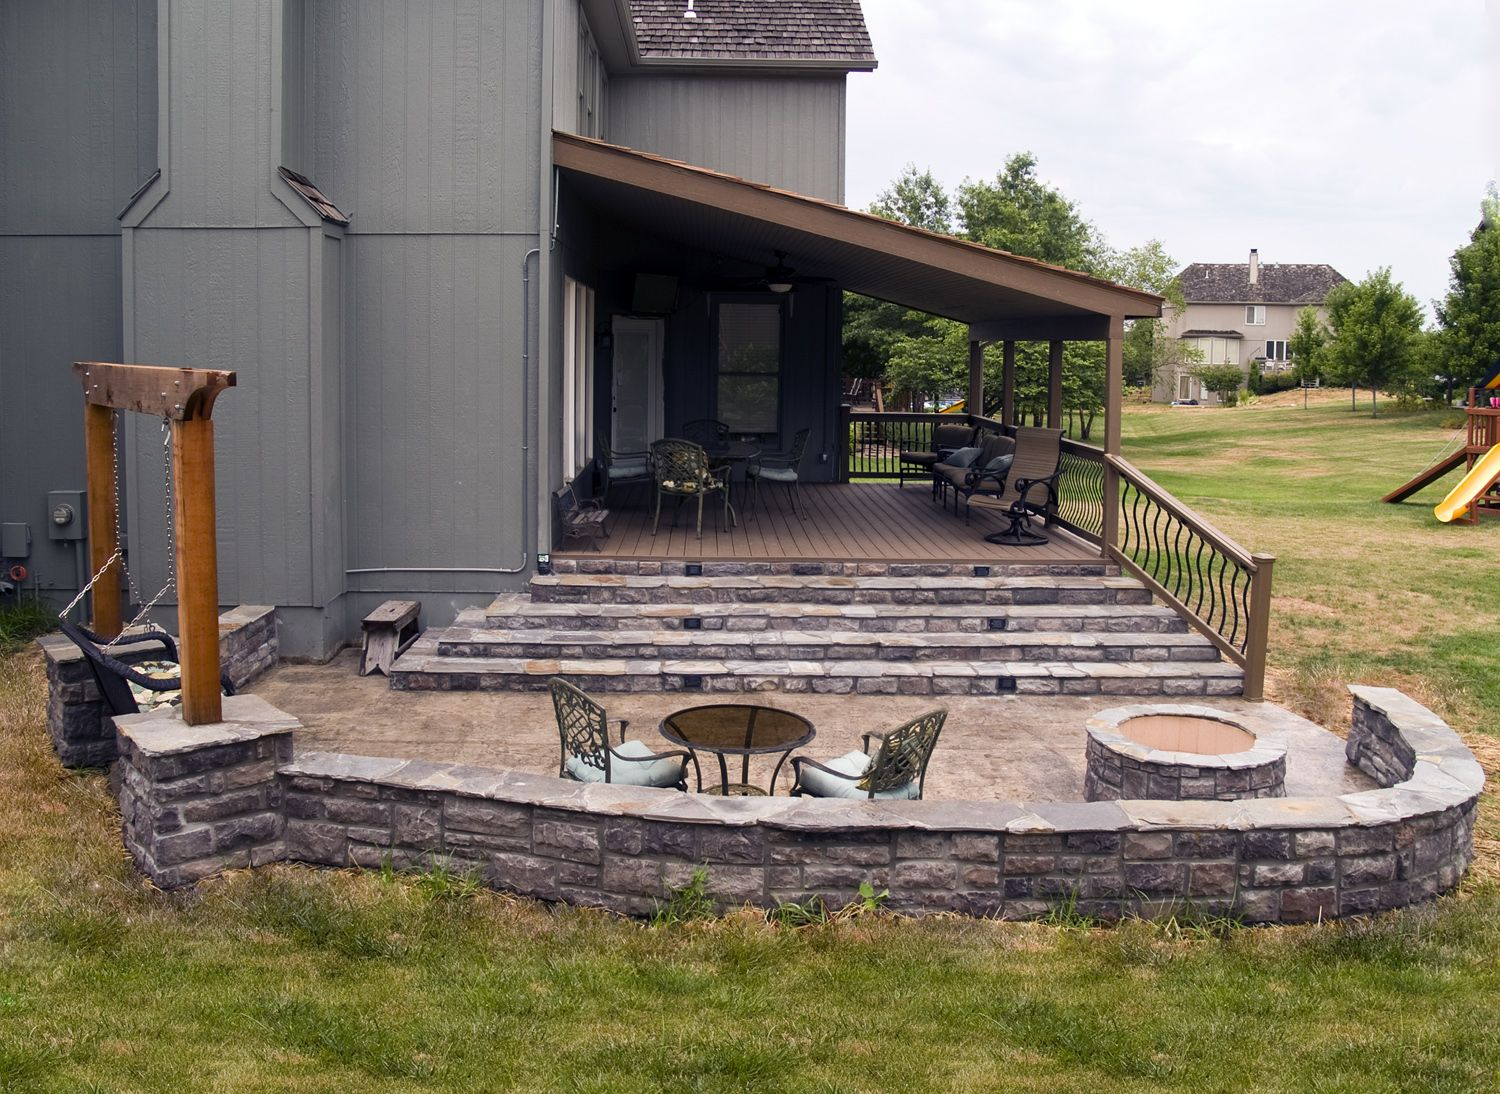 Pictures Of Covered Patios | Covered Patios And Decks Deck Builder, Patios,  Etc.